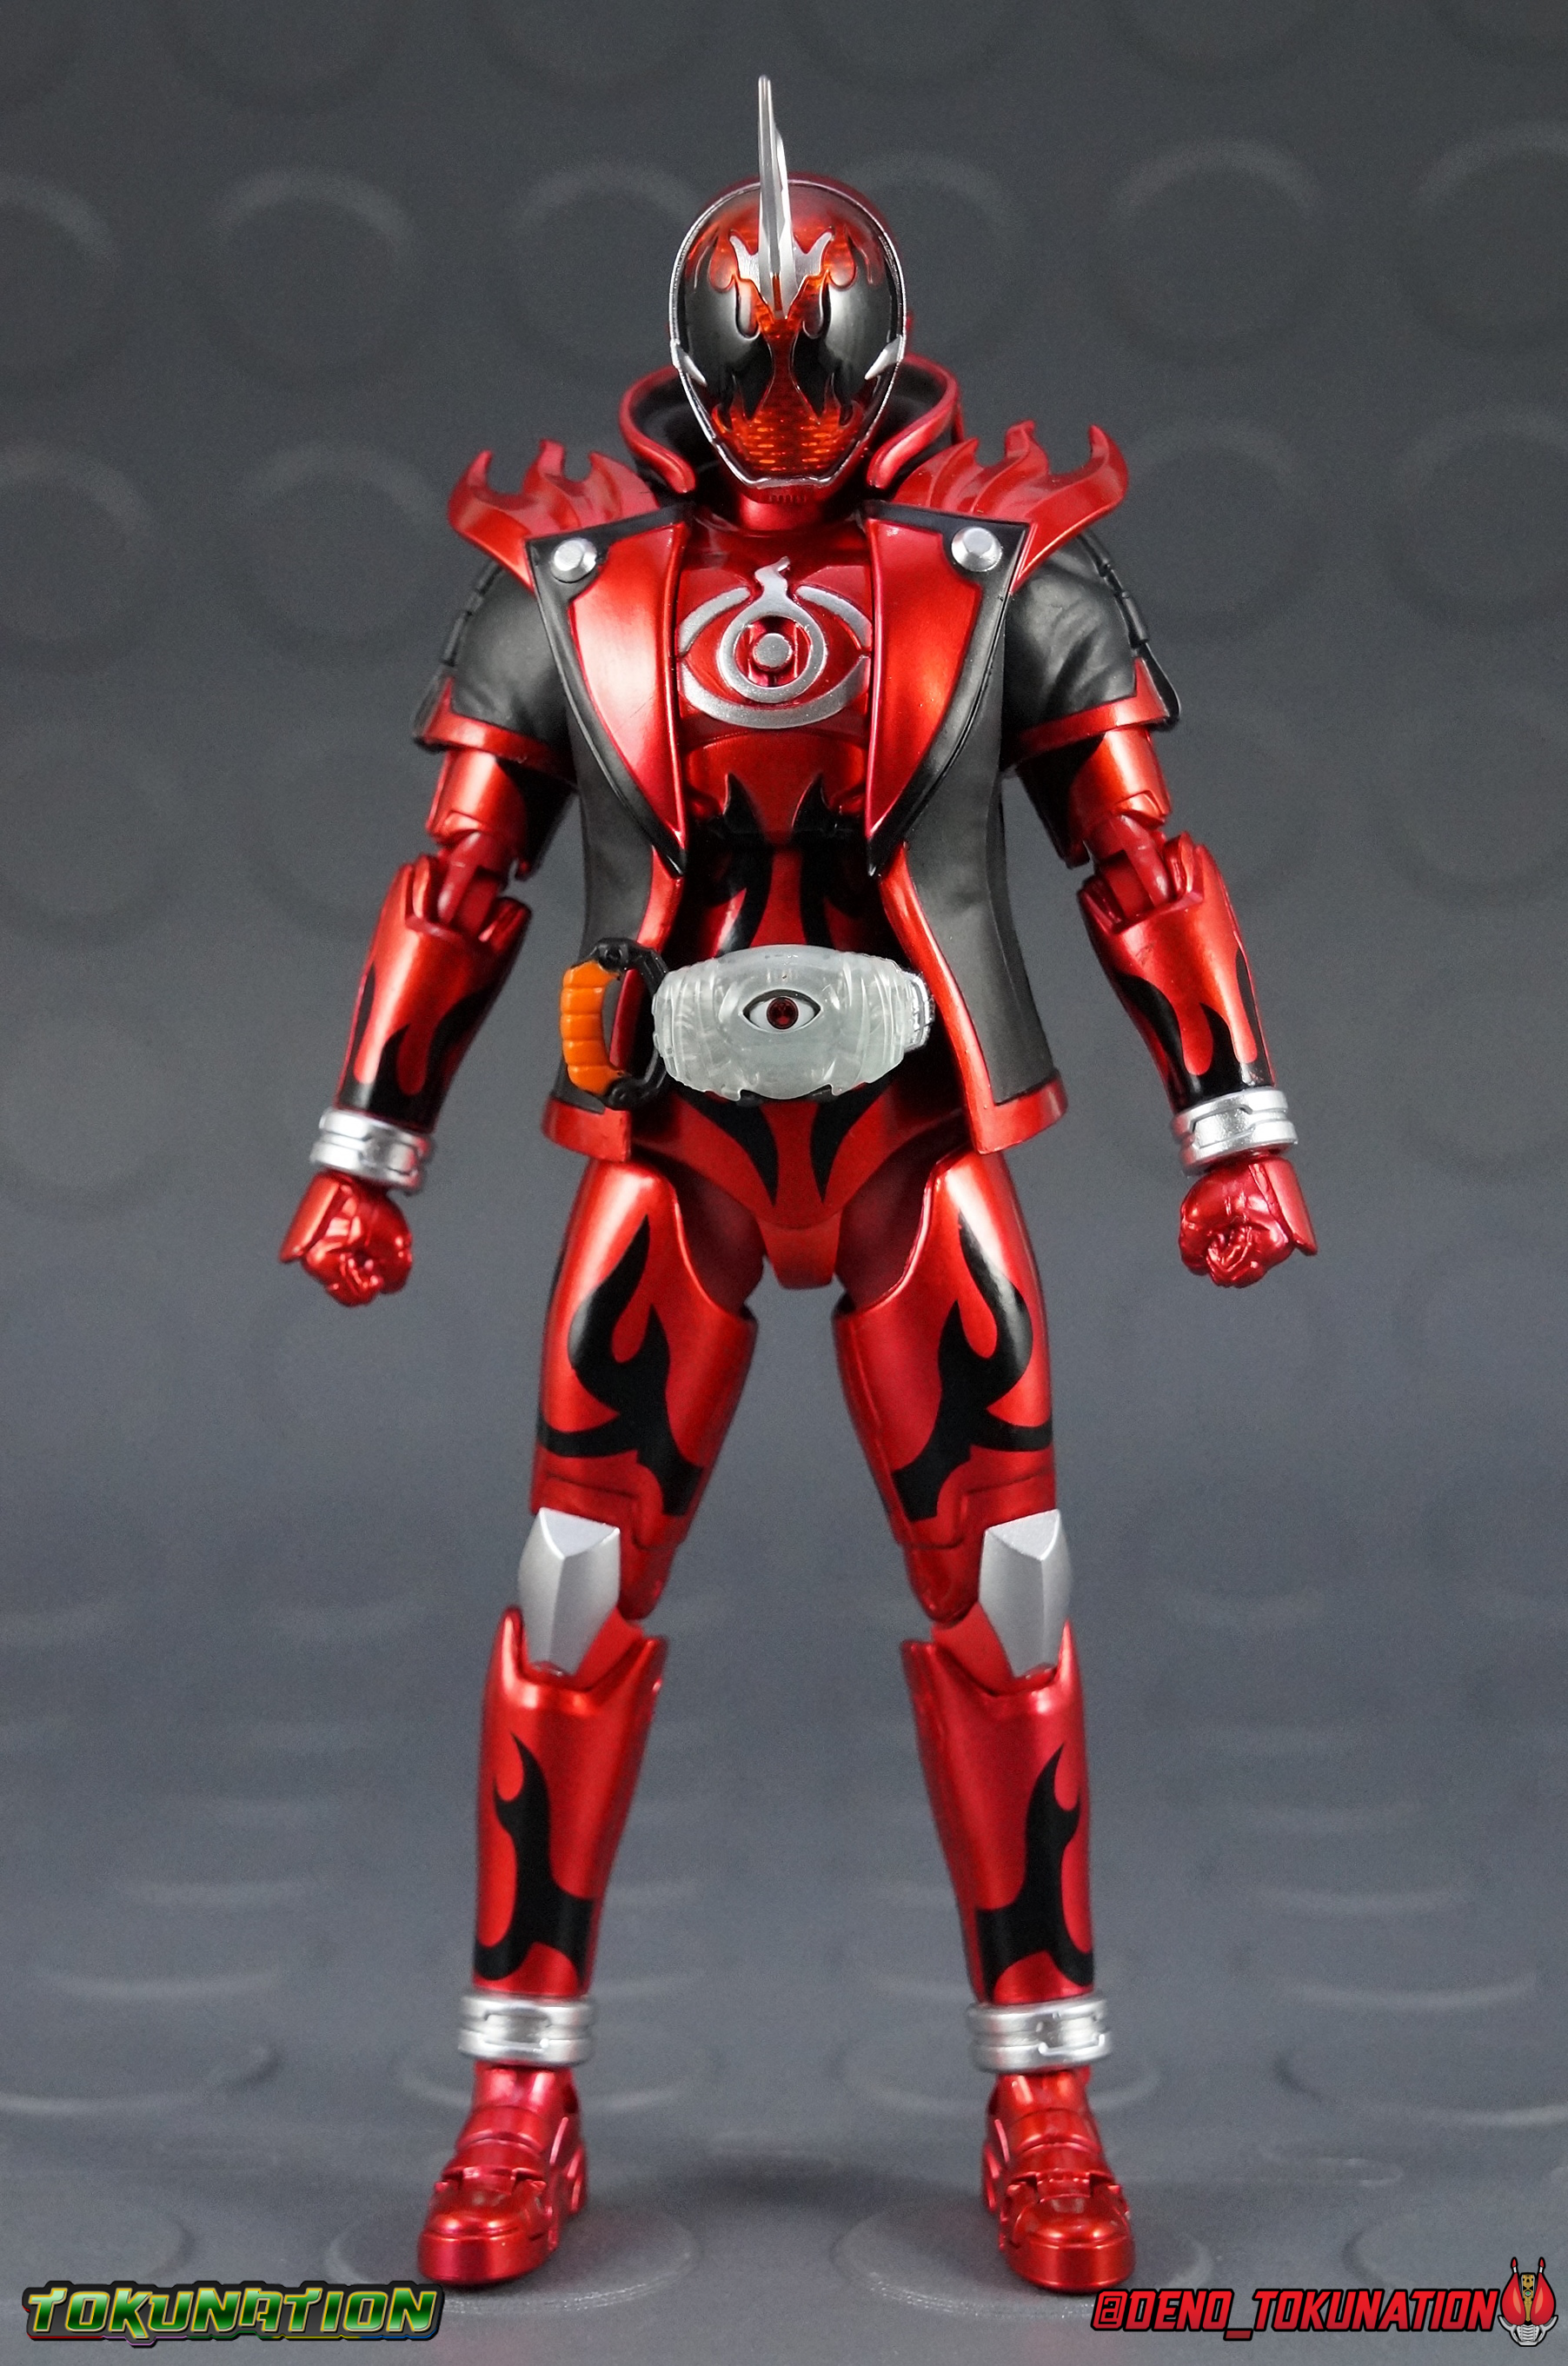 SH Figuarts Kamen Rider Ghost Toucon Boost Damashii 006